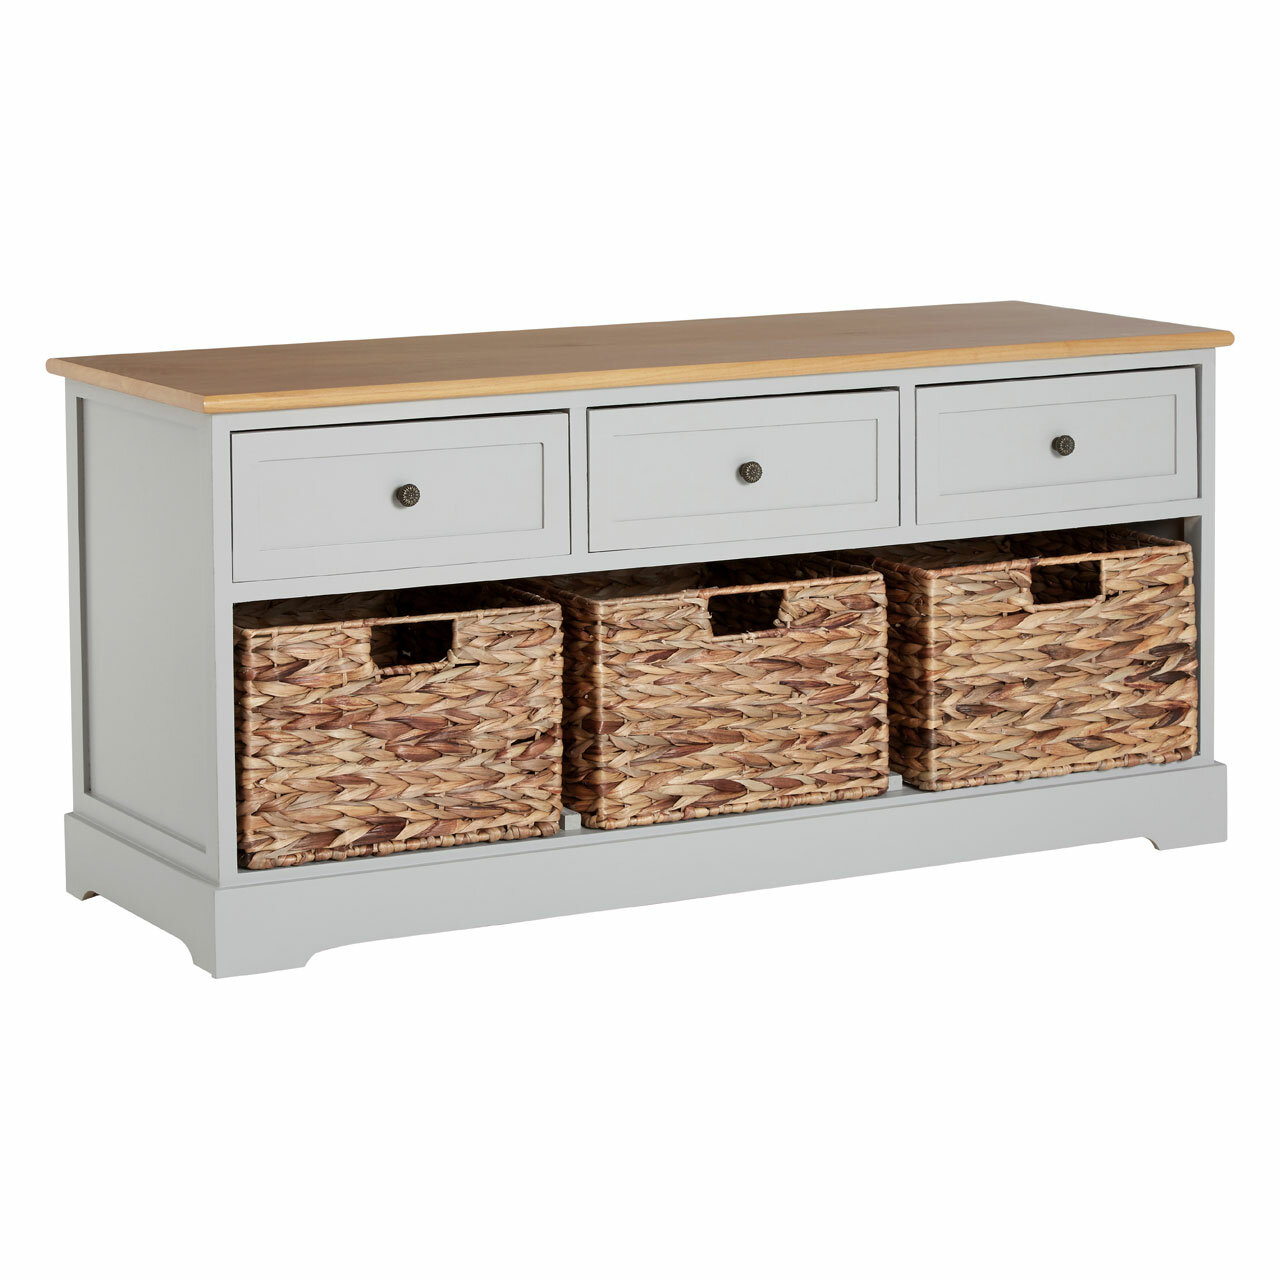 Magnificent Storage Bench With Baskets And Drawers Avalonit Net Pdpeps Interior Chair Design Pdpepsorg